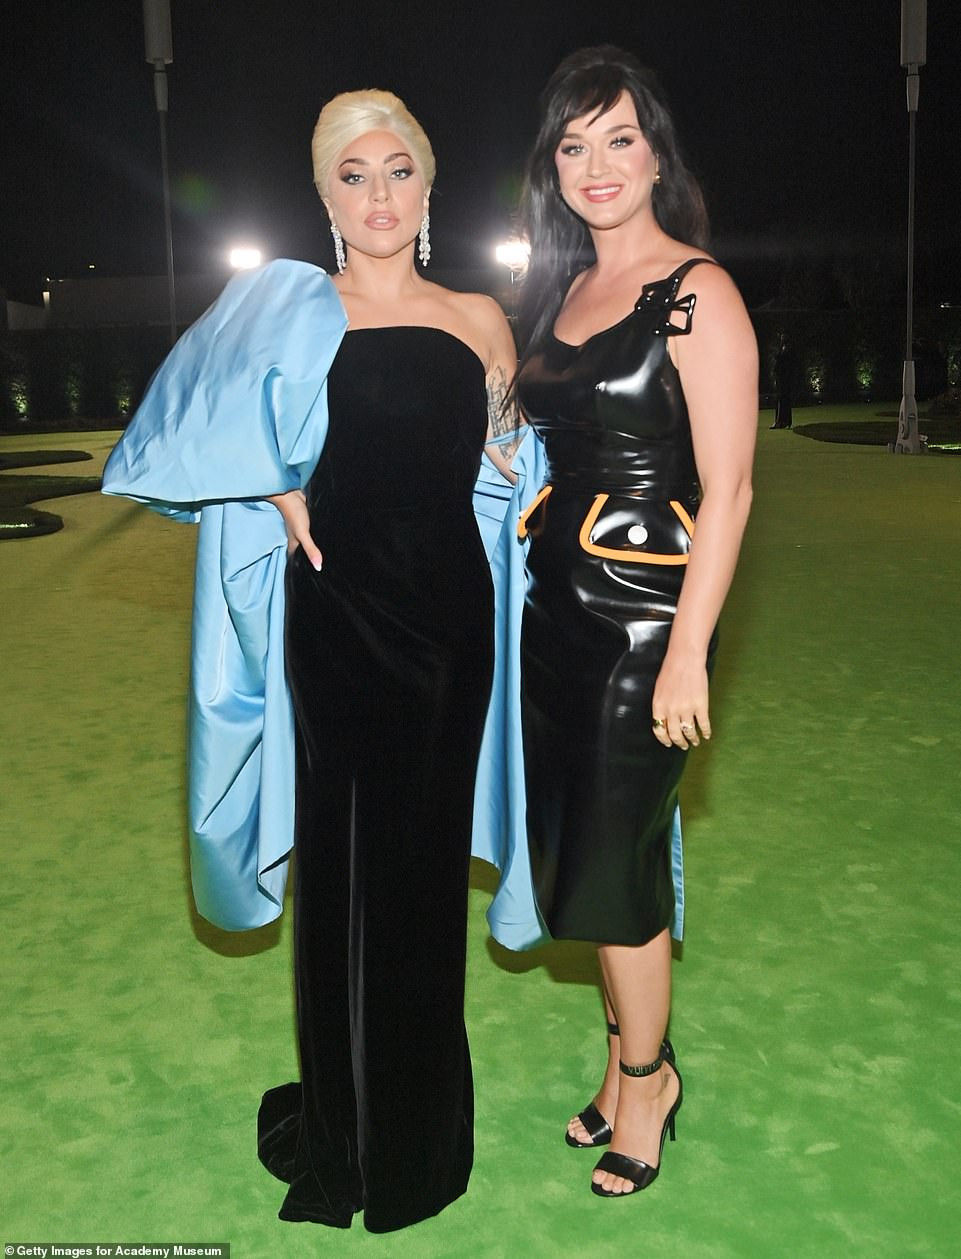 Girl power: Gaga and Katy, whose fans often rival on social media, proved there is enough space in the pop culture sphere for the both of them as they posed for a friendly snap outdoors